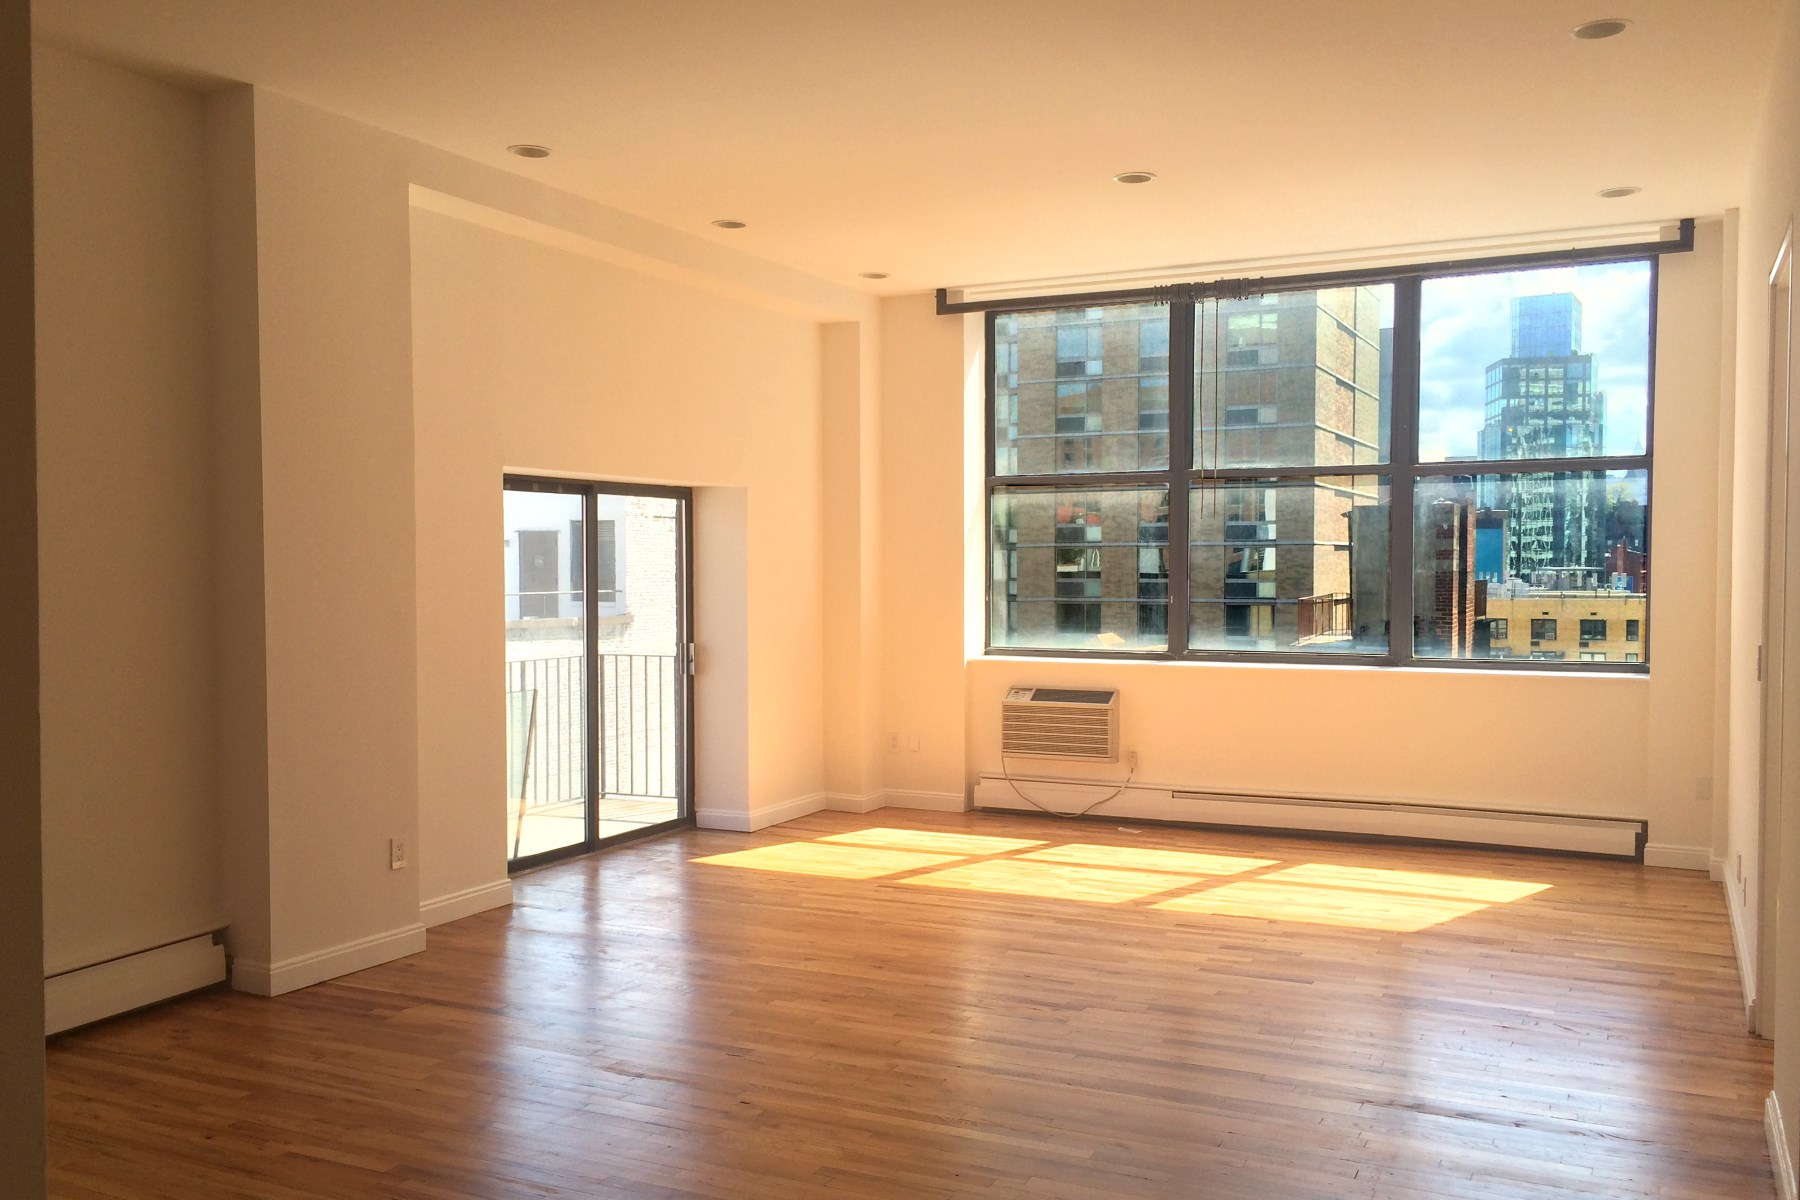 Appartement en copropriété pour l Vente à 114 East 13th Street, Apt 6A 114 East 13th Street Apt 6A East Village, New York, New York, 10003 États-Unis